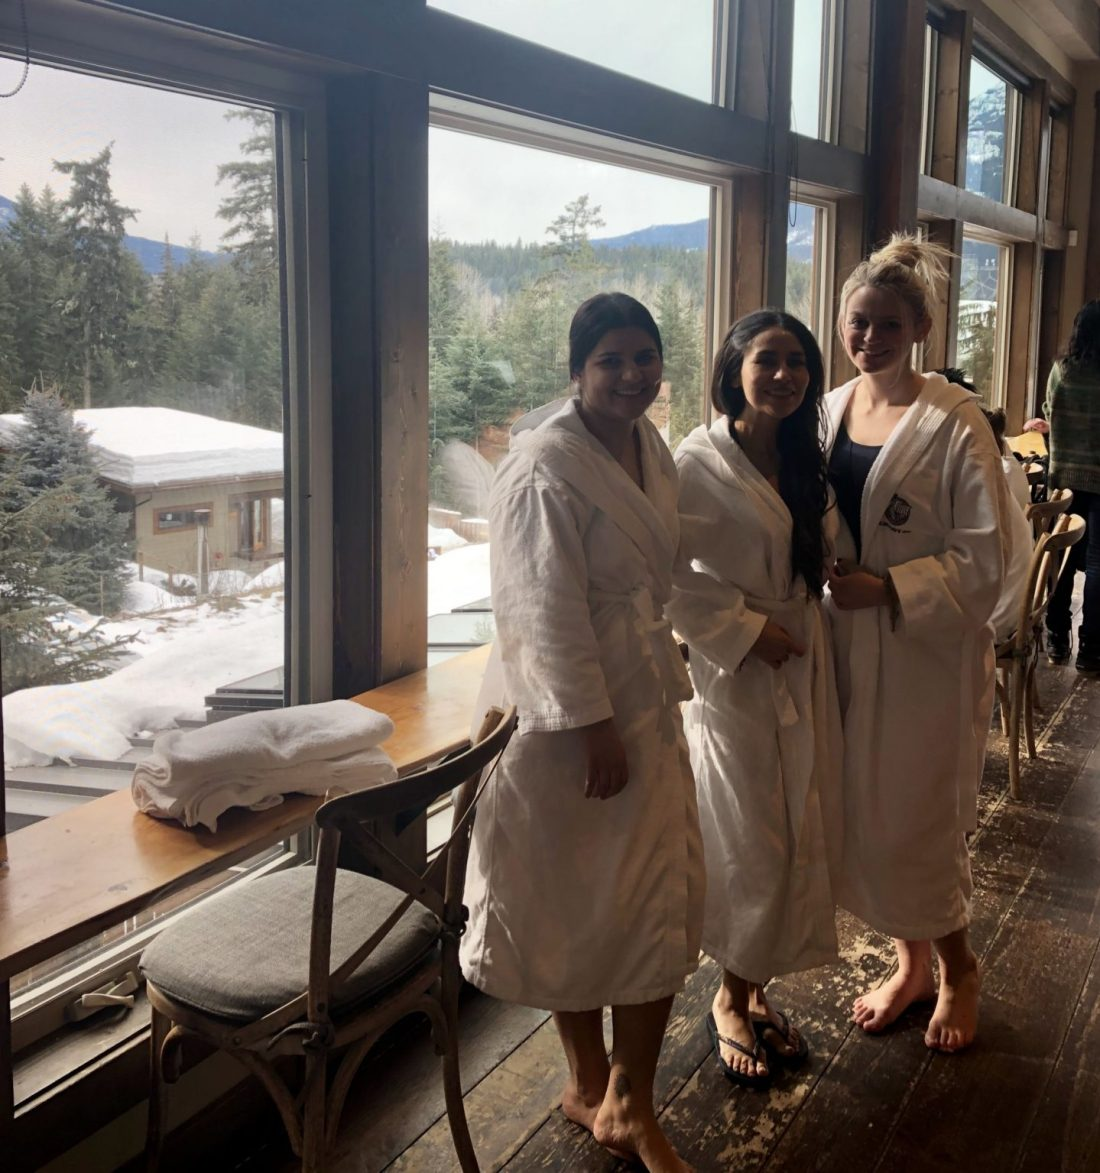 Girls at the Scandinave Spa, Whistler